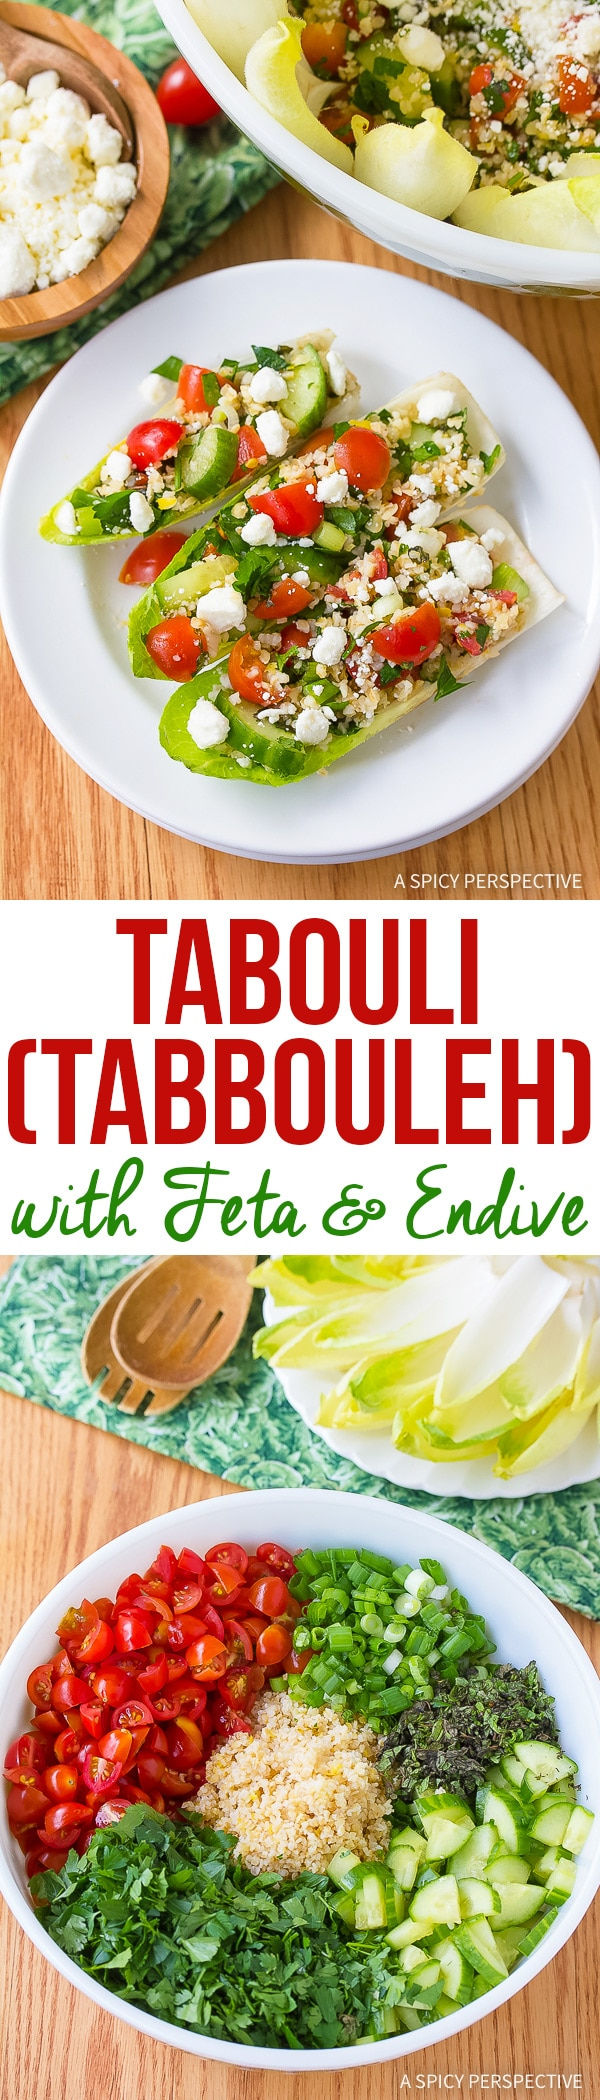 Perky Tabouli (Tabbouleh) with Feta and Endive Recipe